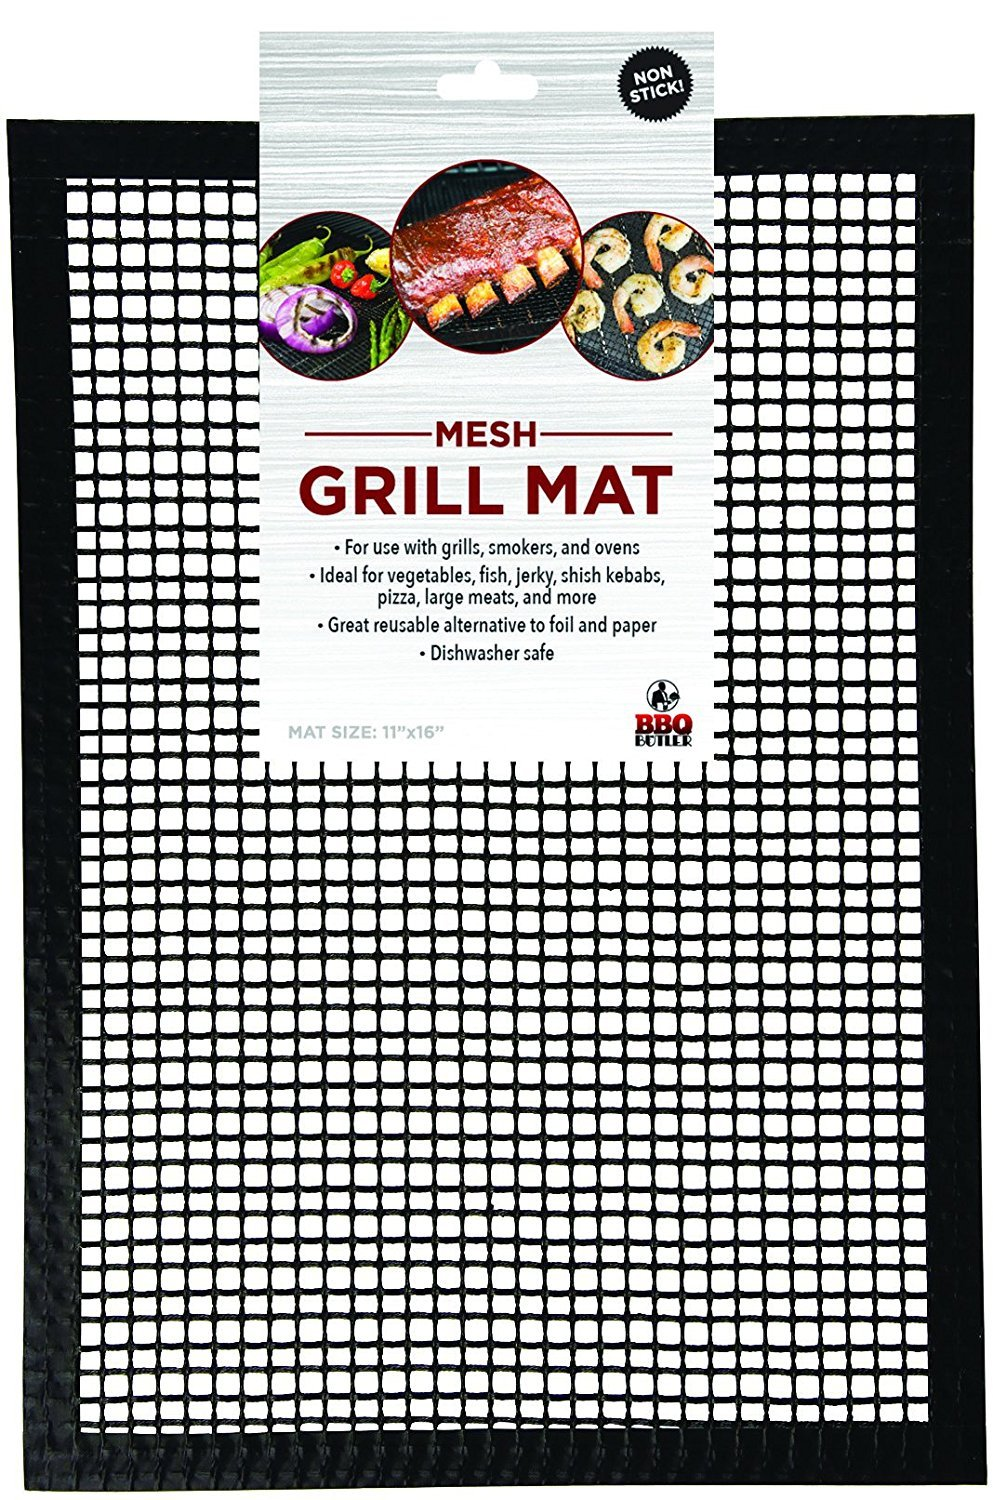 Grill Mat BBQ Tool - Mesh Grill Mat That Allows Smoke to Pass Through - Non-Stick - Perfect For Grills, Smokers and Ovens BBQ Butler